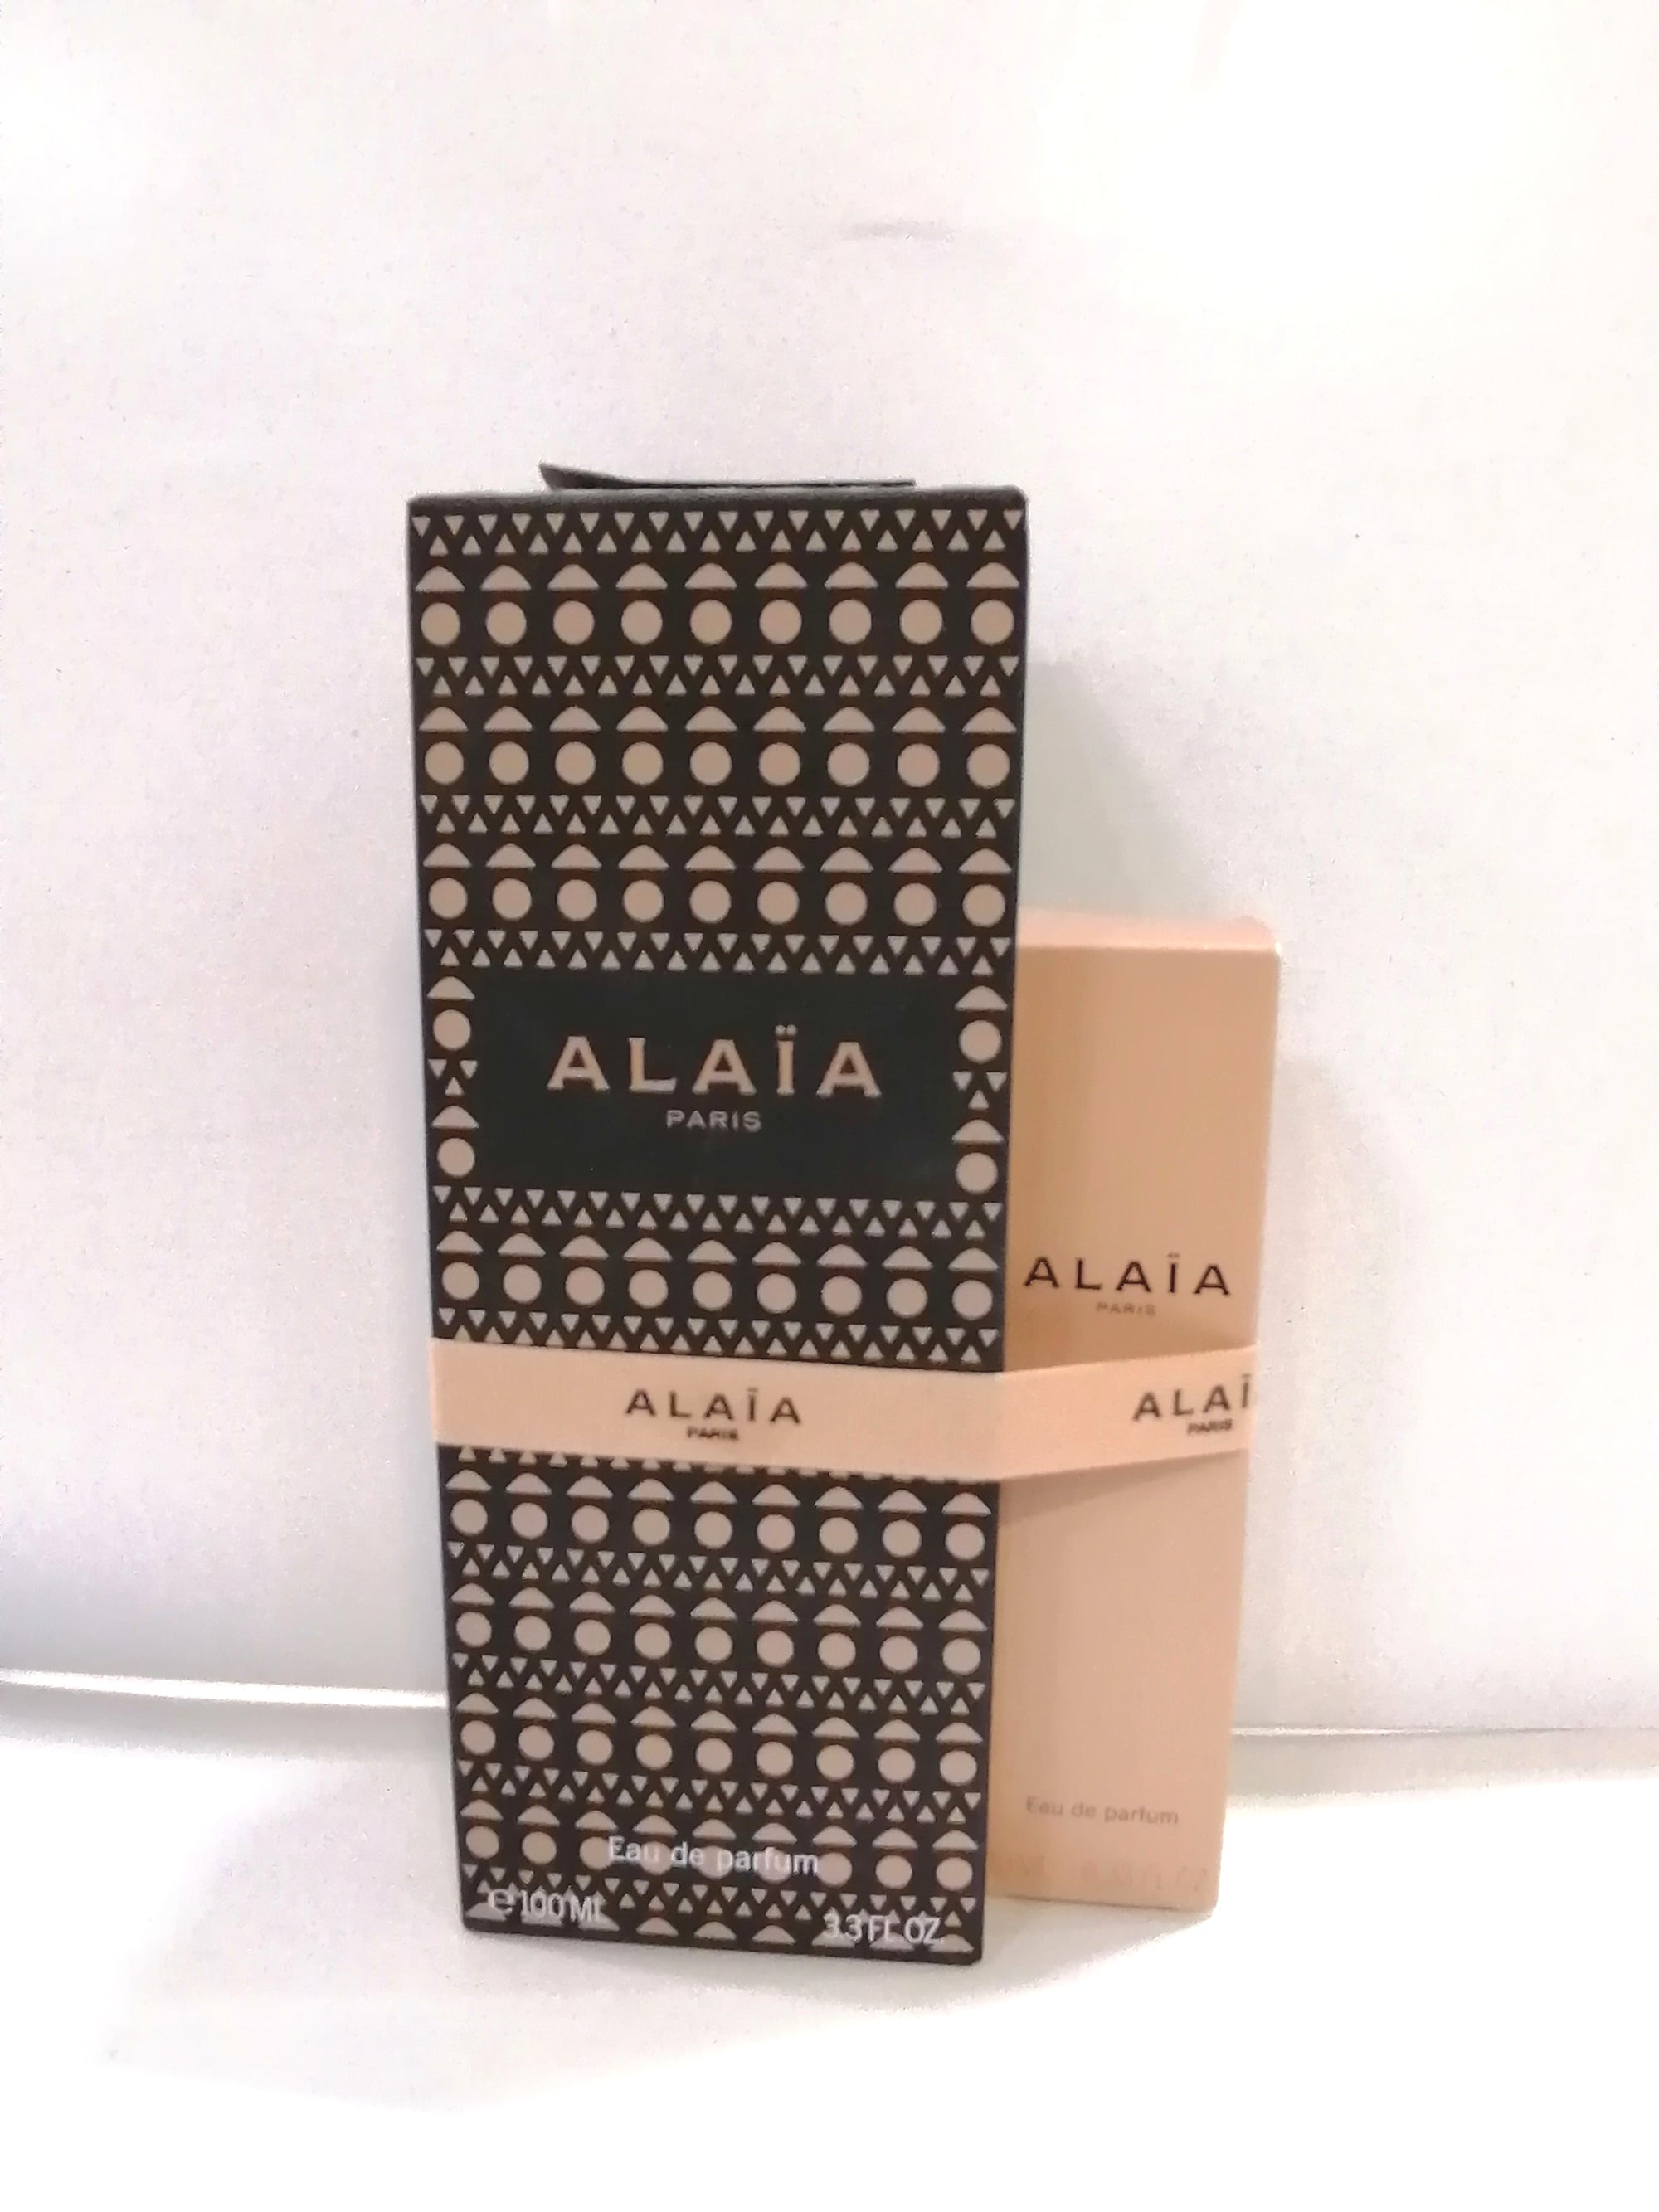 Alaia Paris 2pc Set 100ml EDP and 10ml EDP for Women